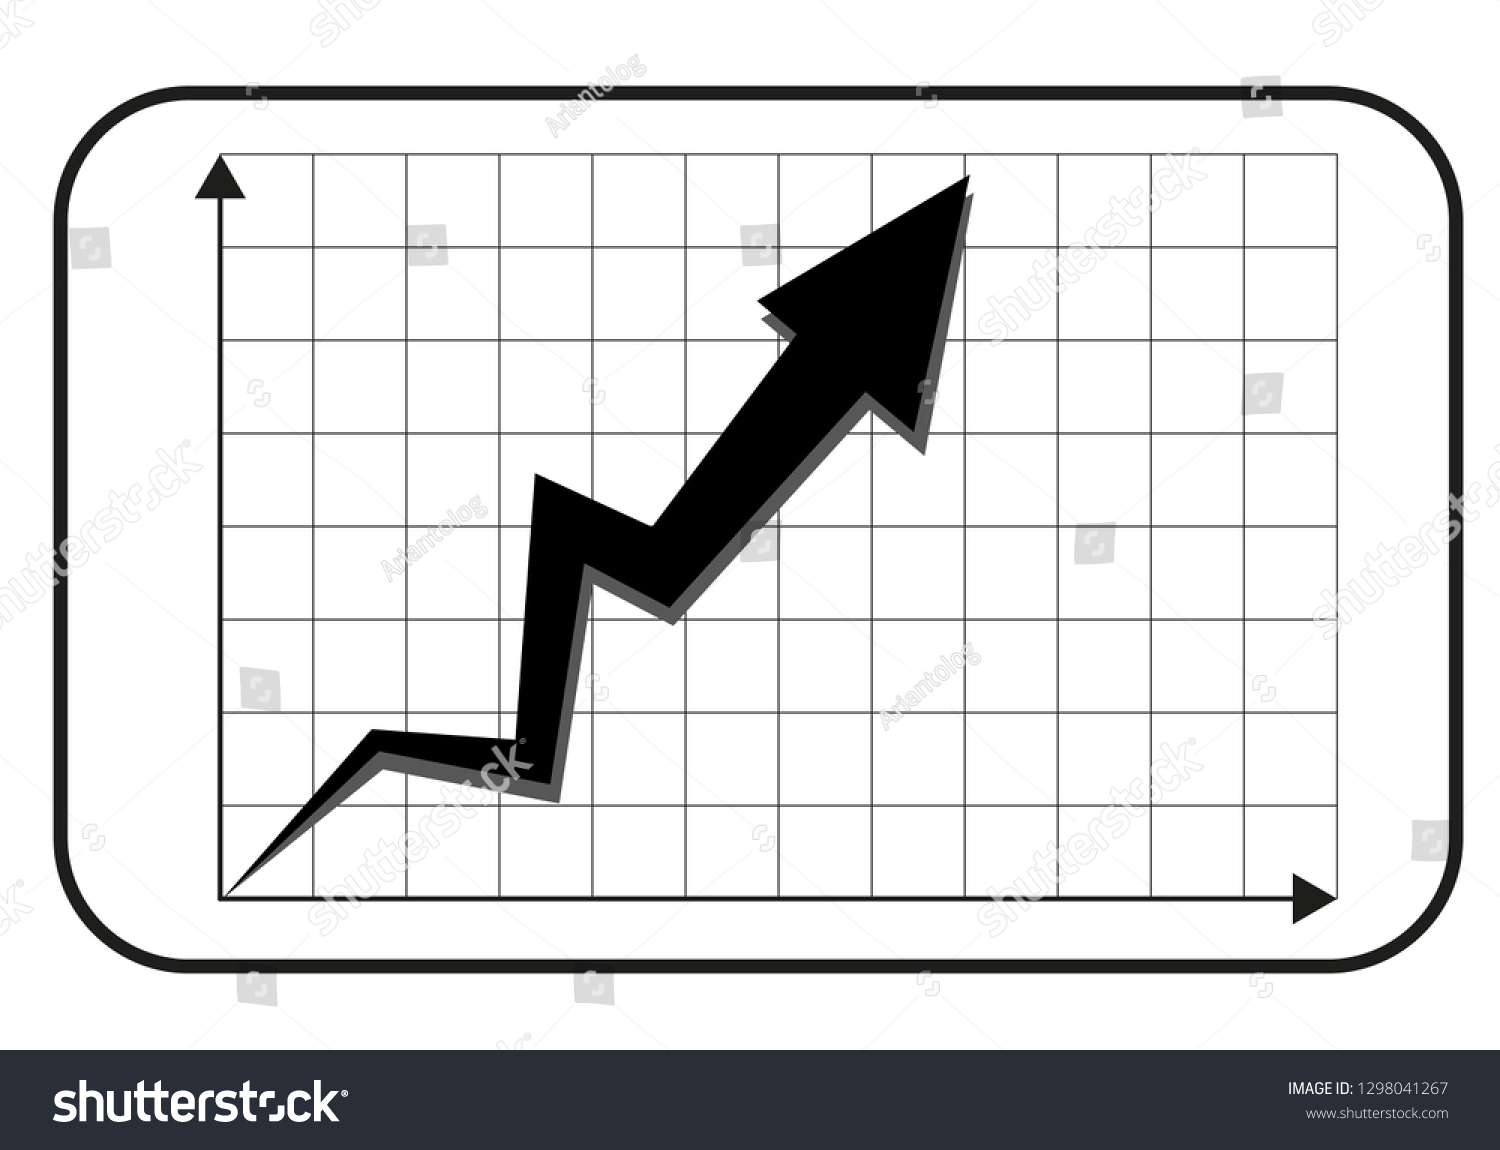 Cool Simple Black White Upward Trend Stock Vector Royalty